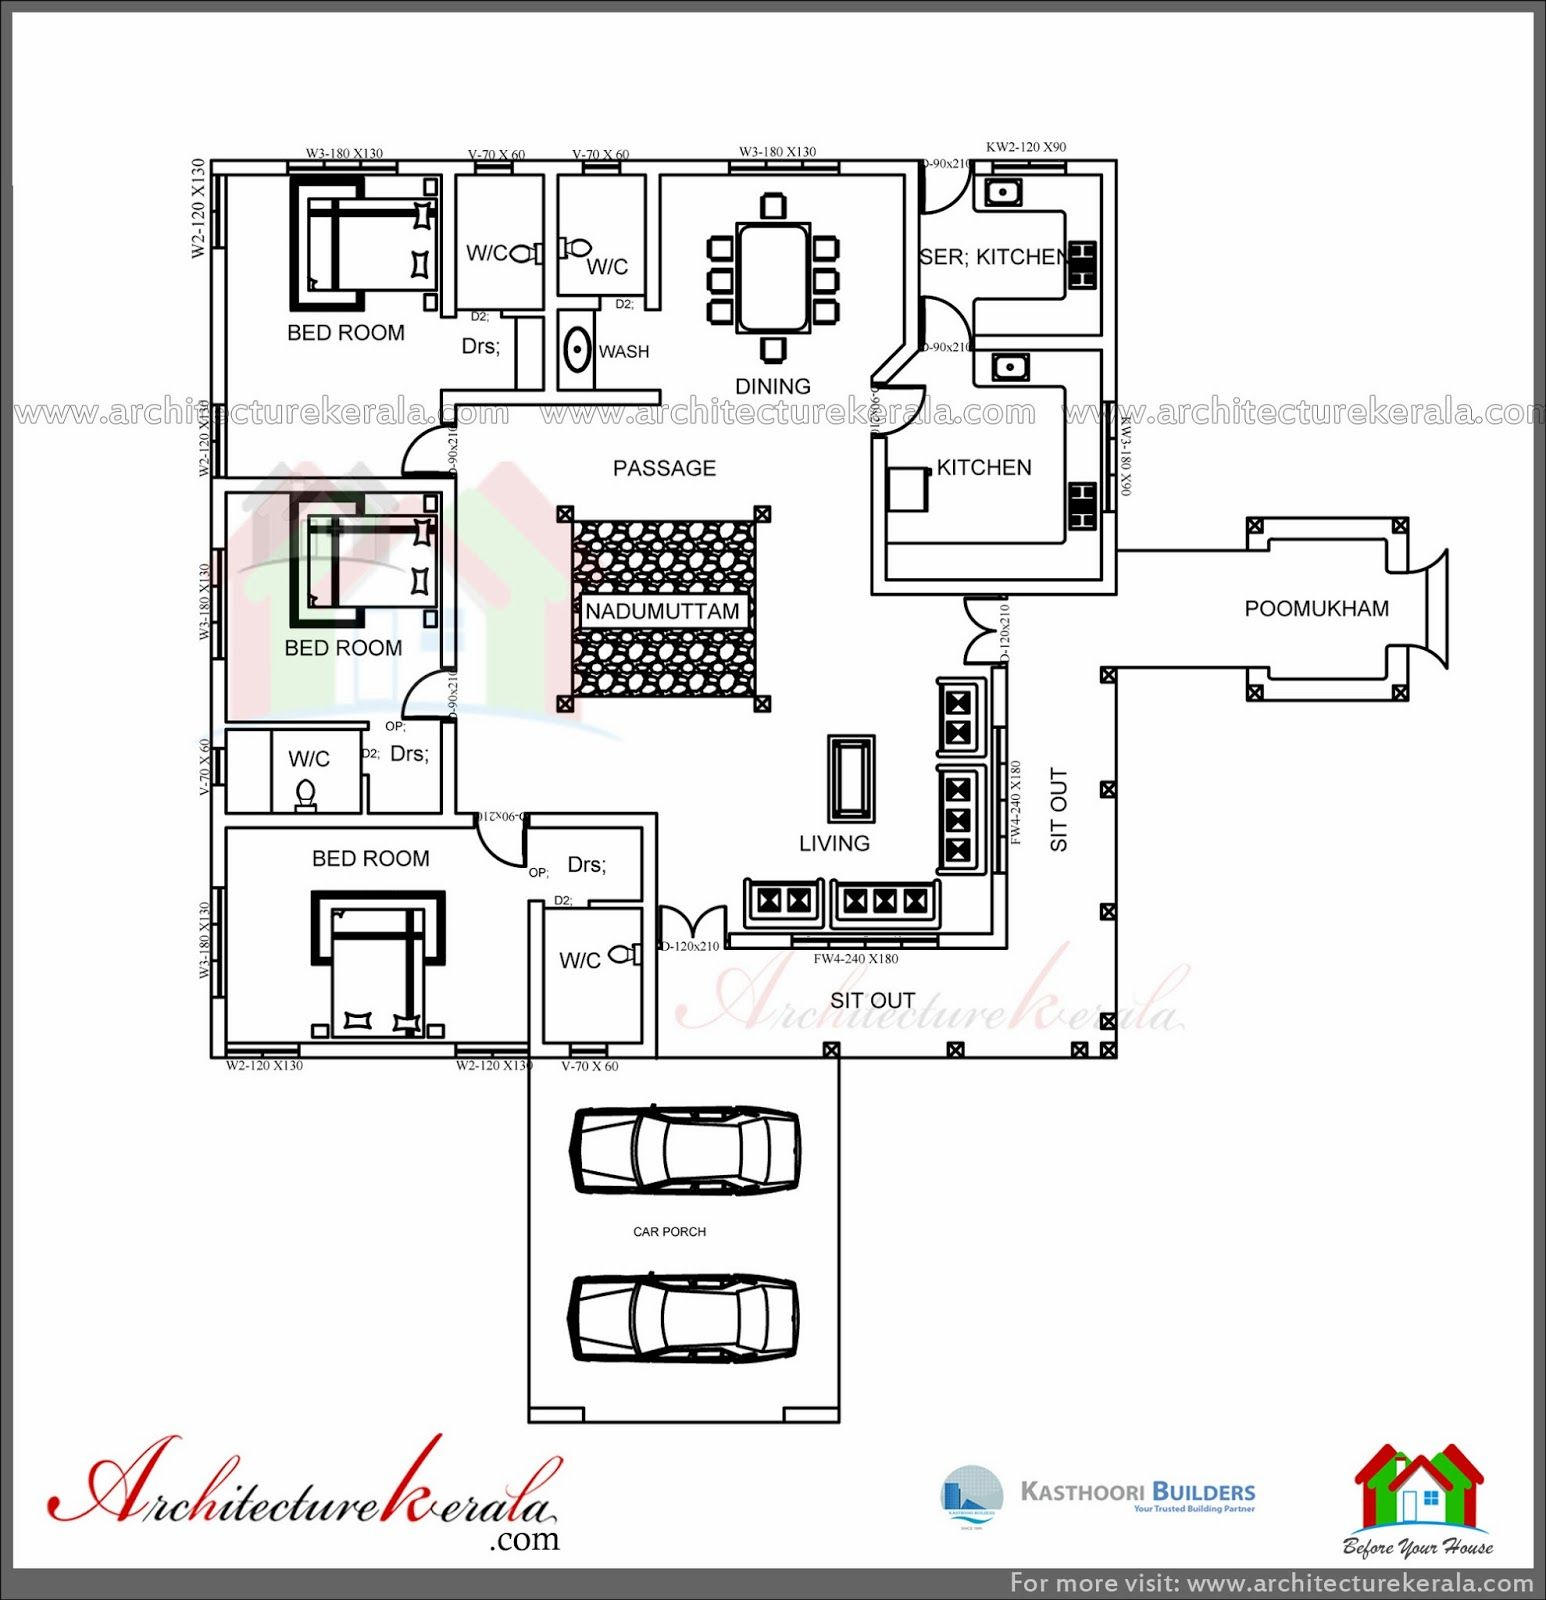 ARCHITECTURE KERALA: TRADITIONAL HOUSE PLAN WITH NADUMUTTAM AND POOMUKHAM Nice Look